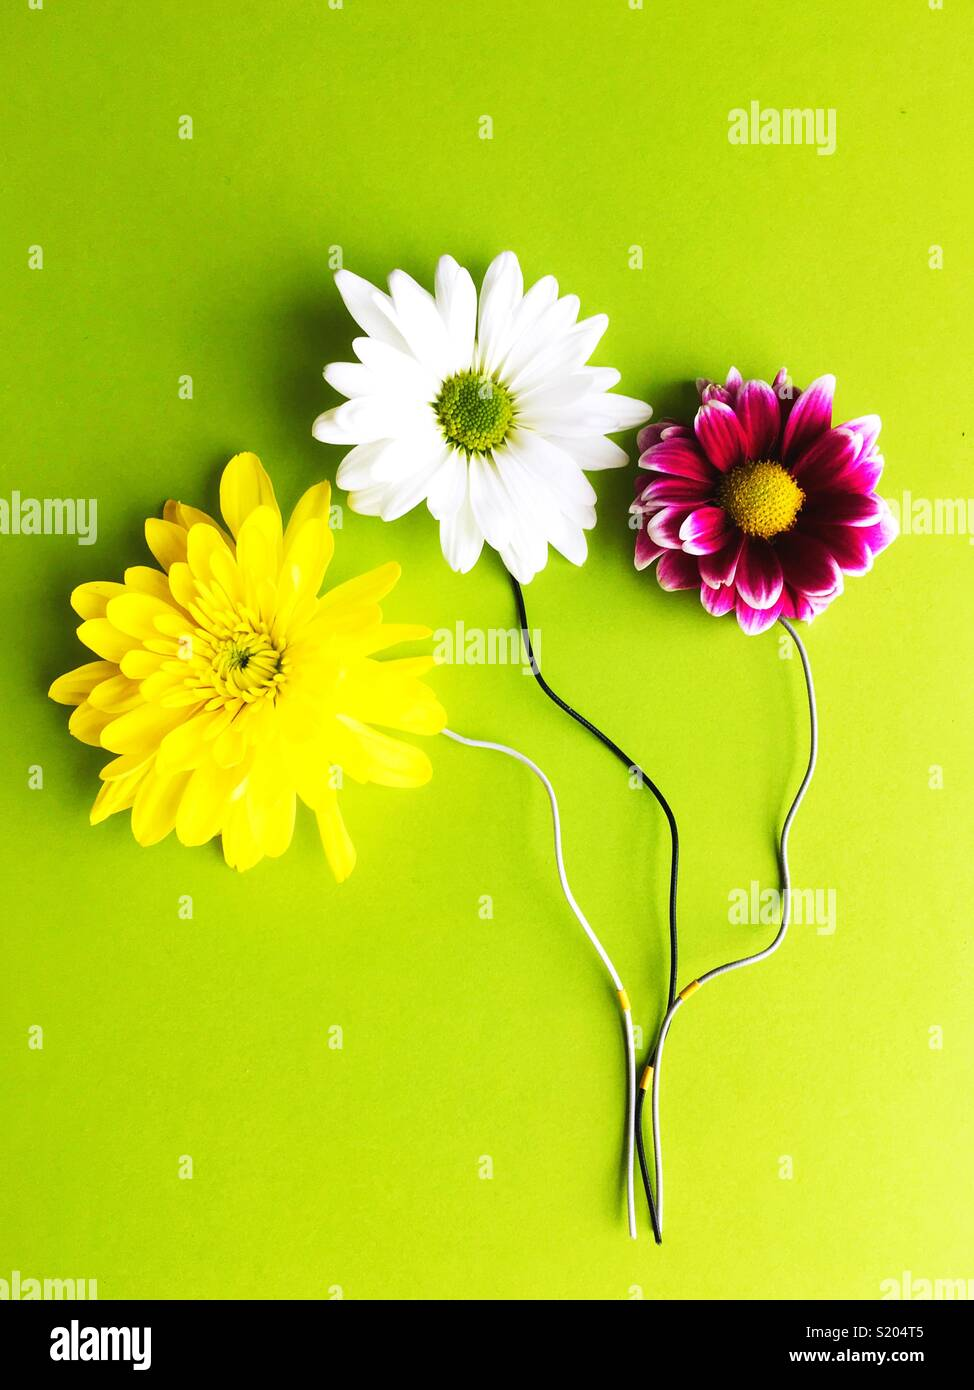 Flowers with electrical wires for stems. - Stock Image